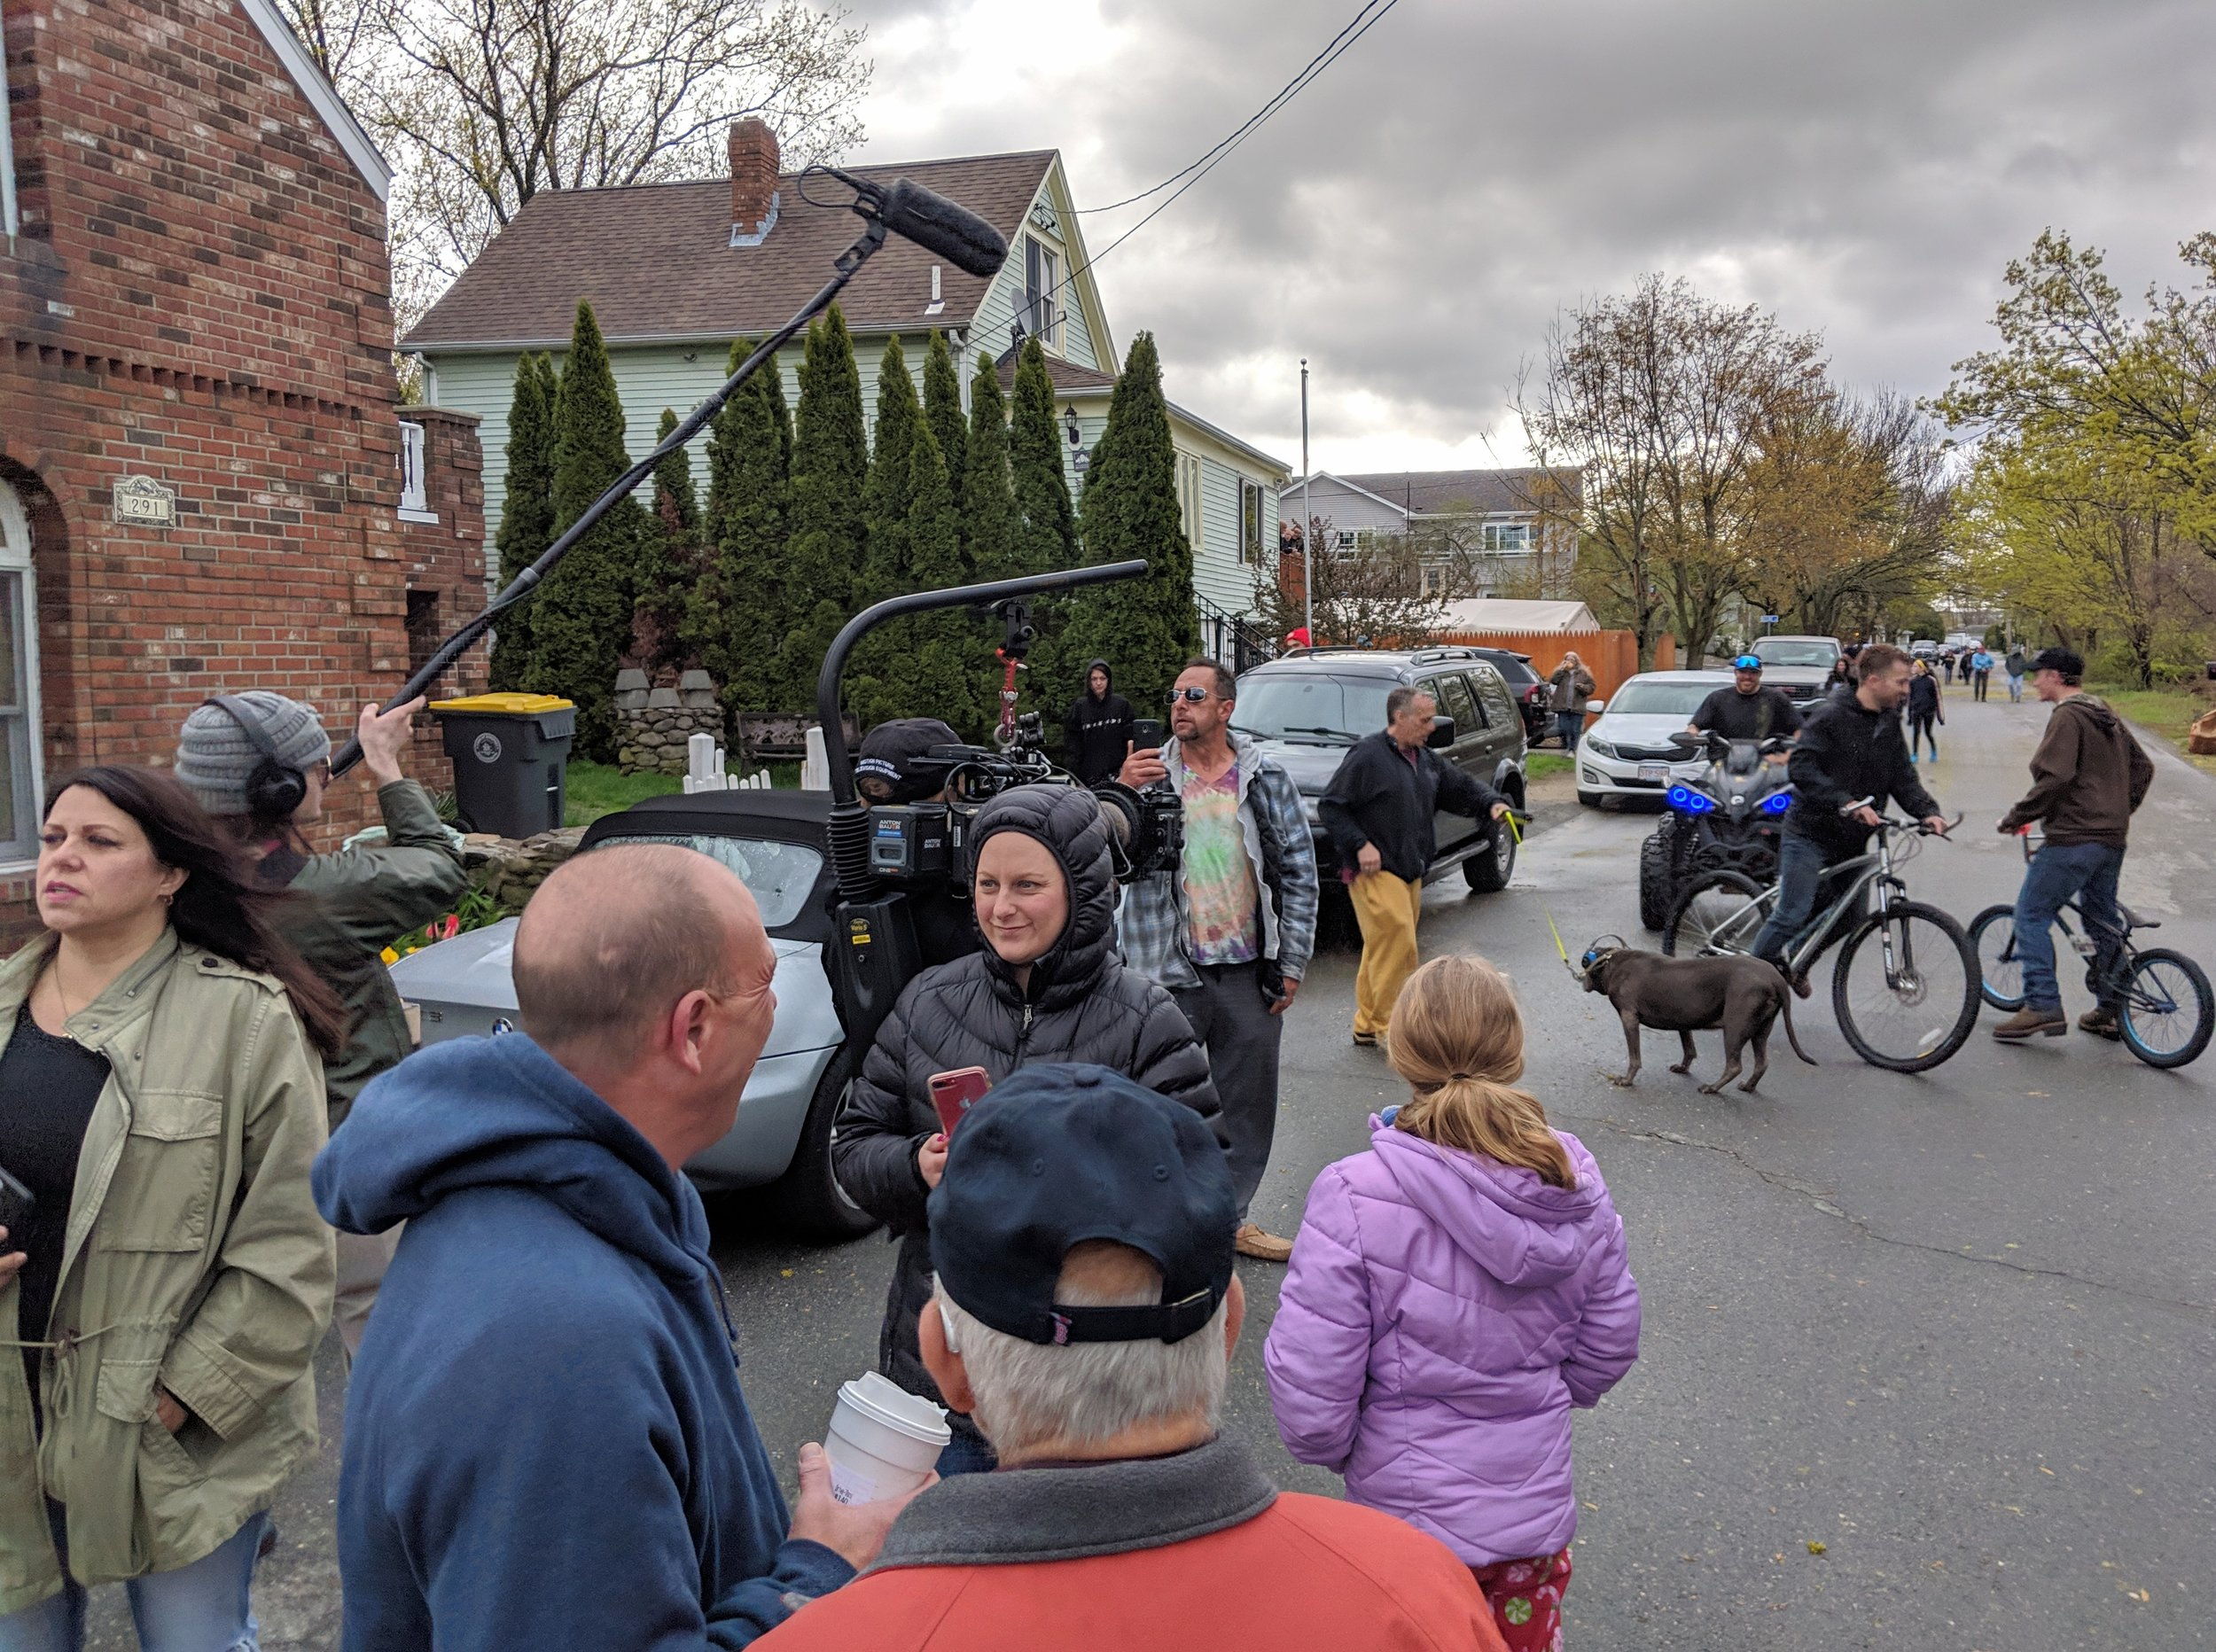 Residents of Perkins and Carey streets in the Brayton Point neighborhood gathered to watch the twin cooling towers implode.